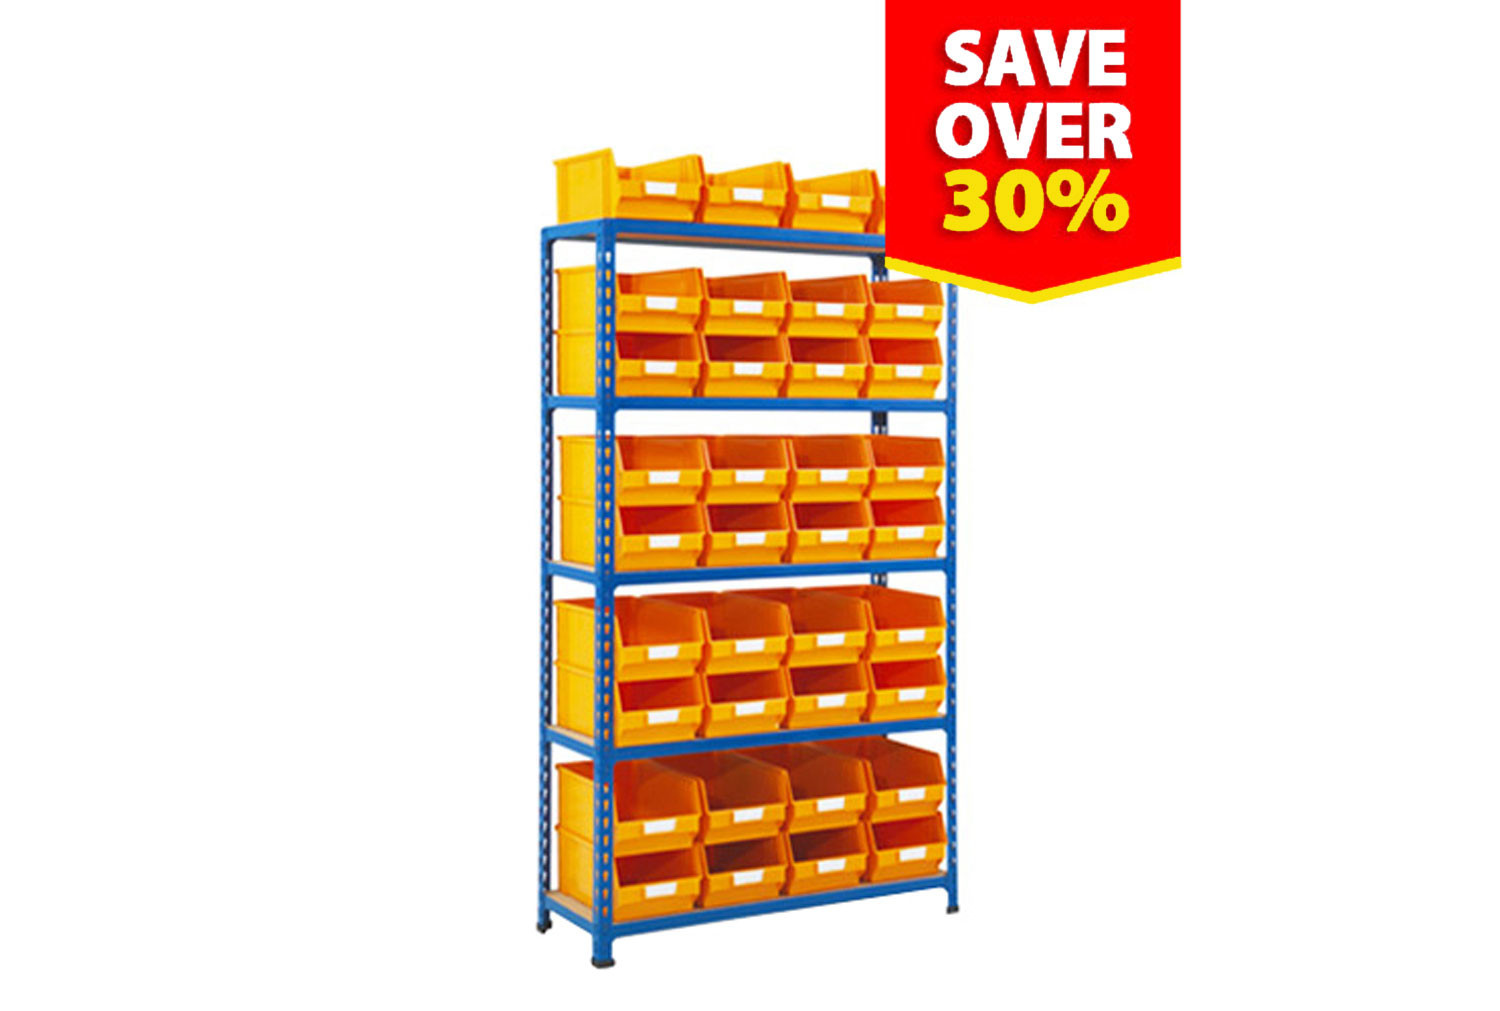 Rapid 2 shelving with 36 picking bins